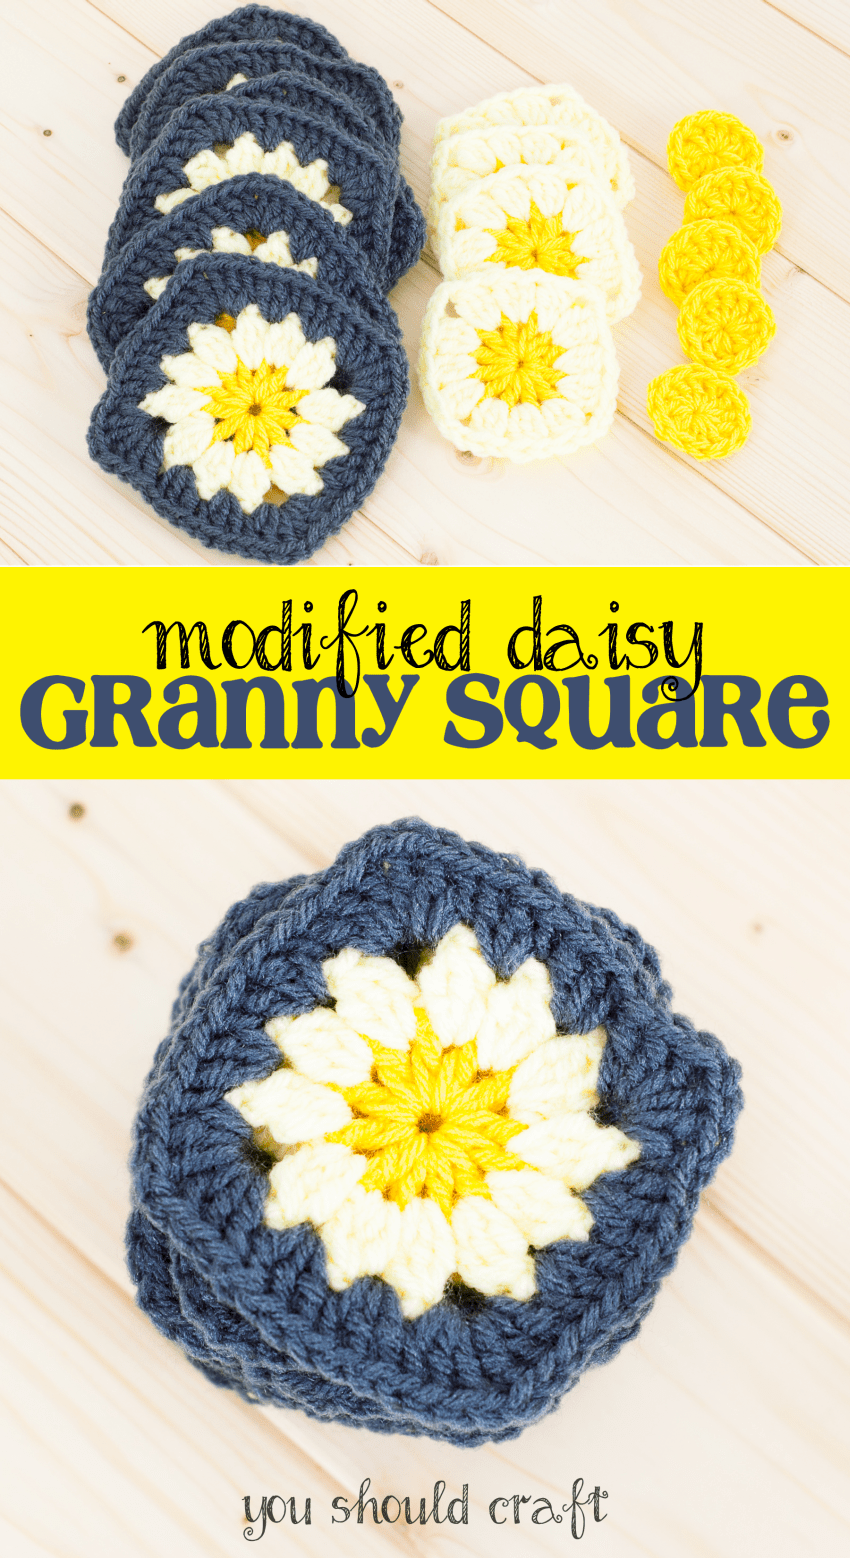 Looking to crochet a cute and easy granny square this spring? Look no further! These modified daisy granny squares are only three rounds, can be used with classic granny squares, and have an adorable daisy flower at the center. They're the perfect crochet project for spring! via YouShouldCraft.com